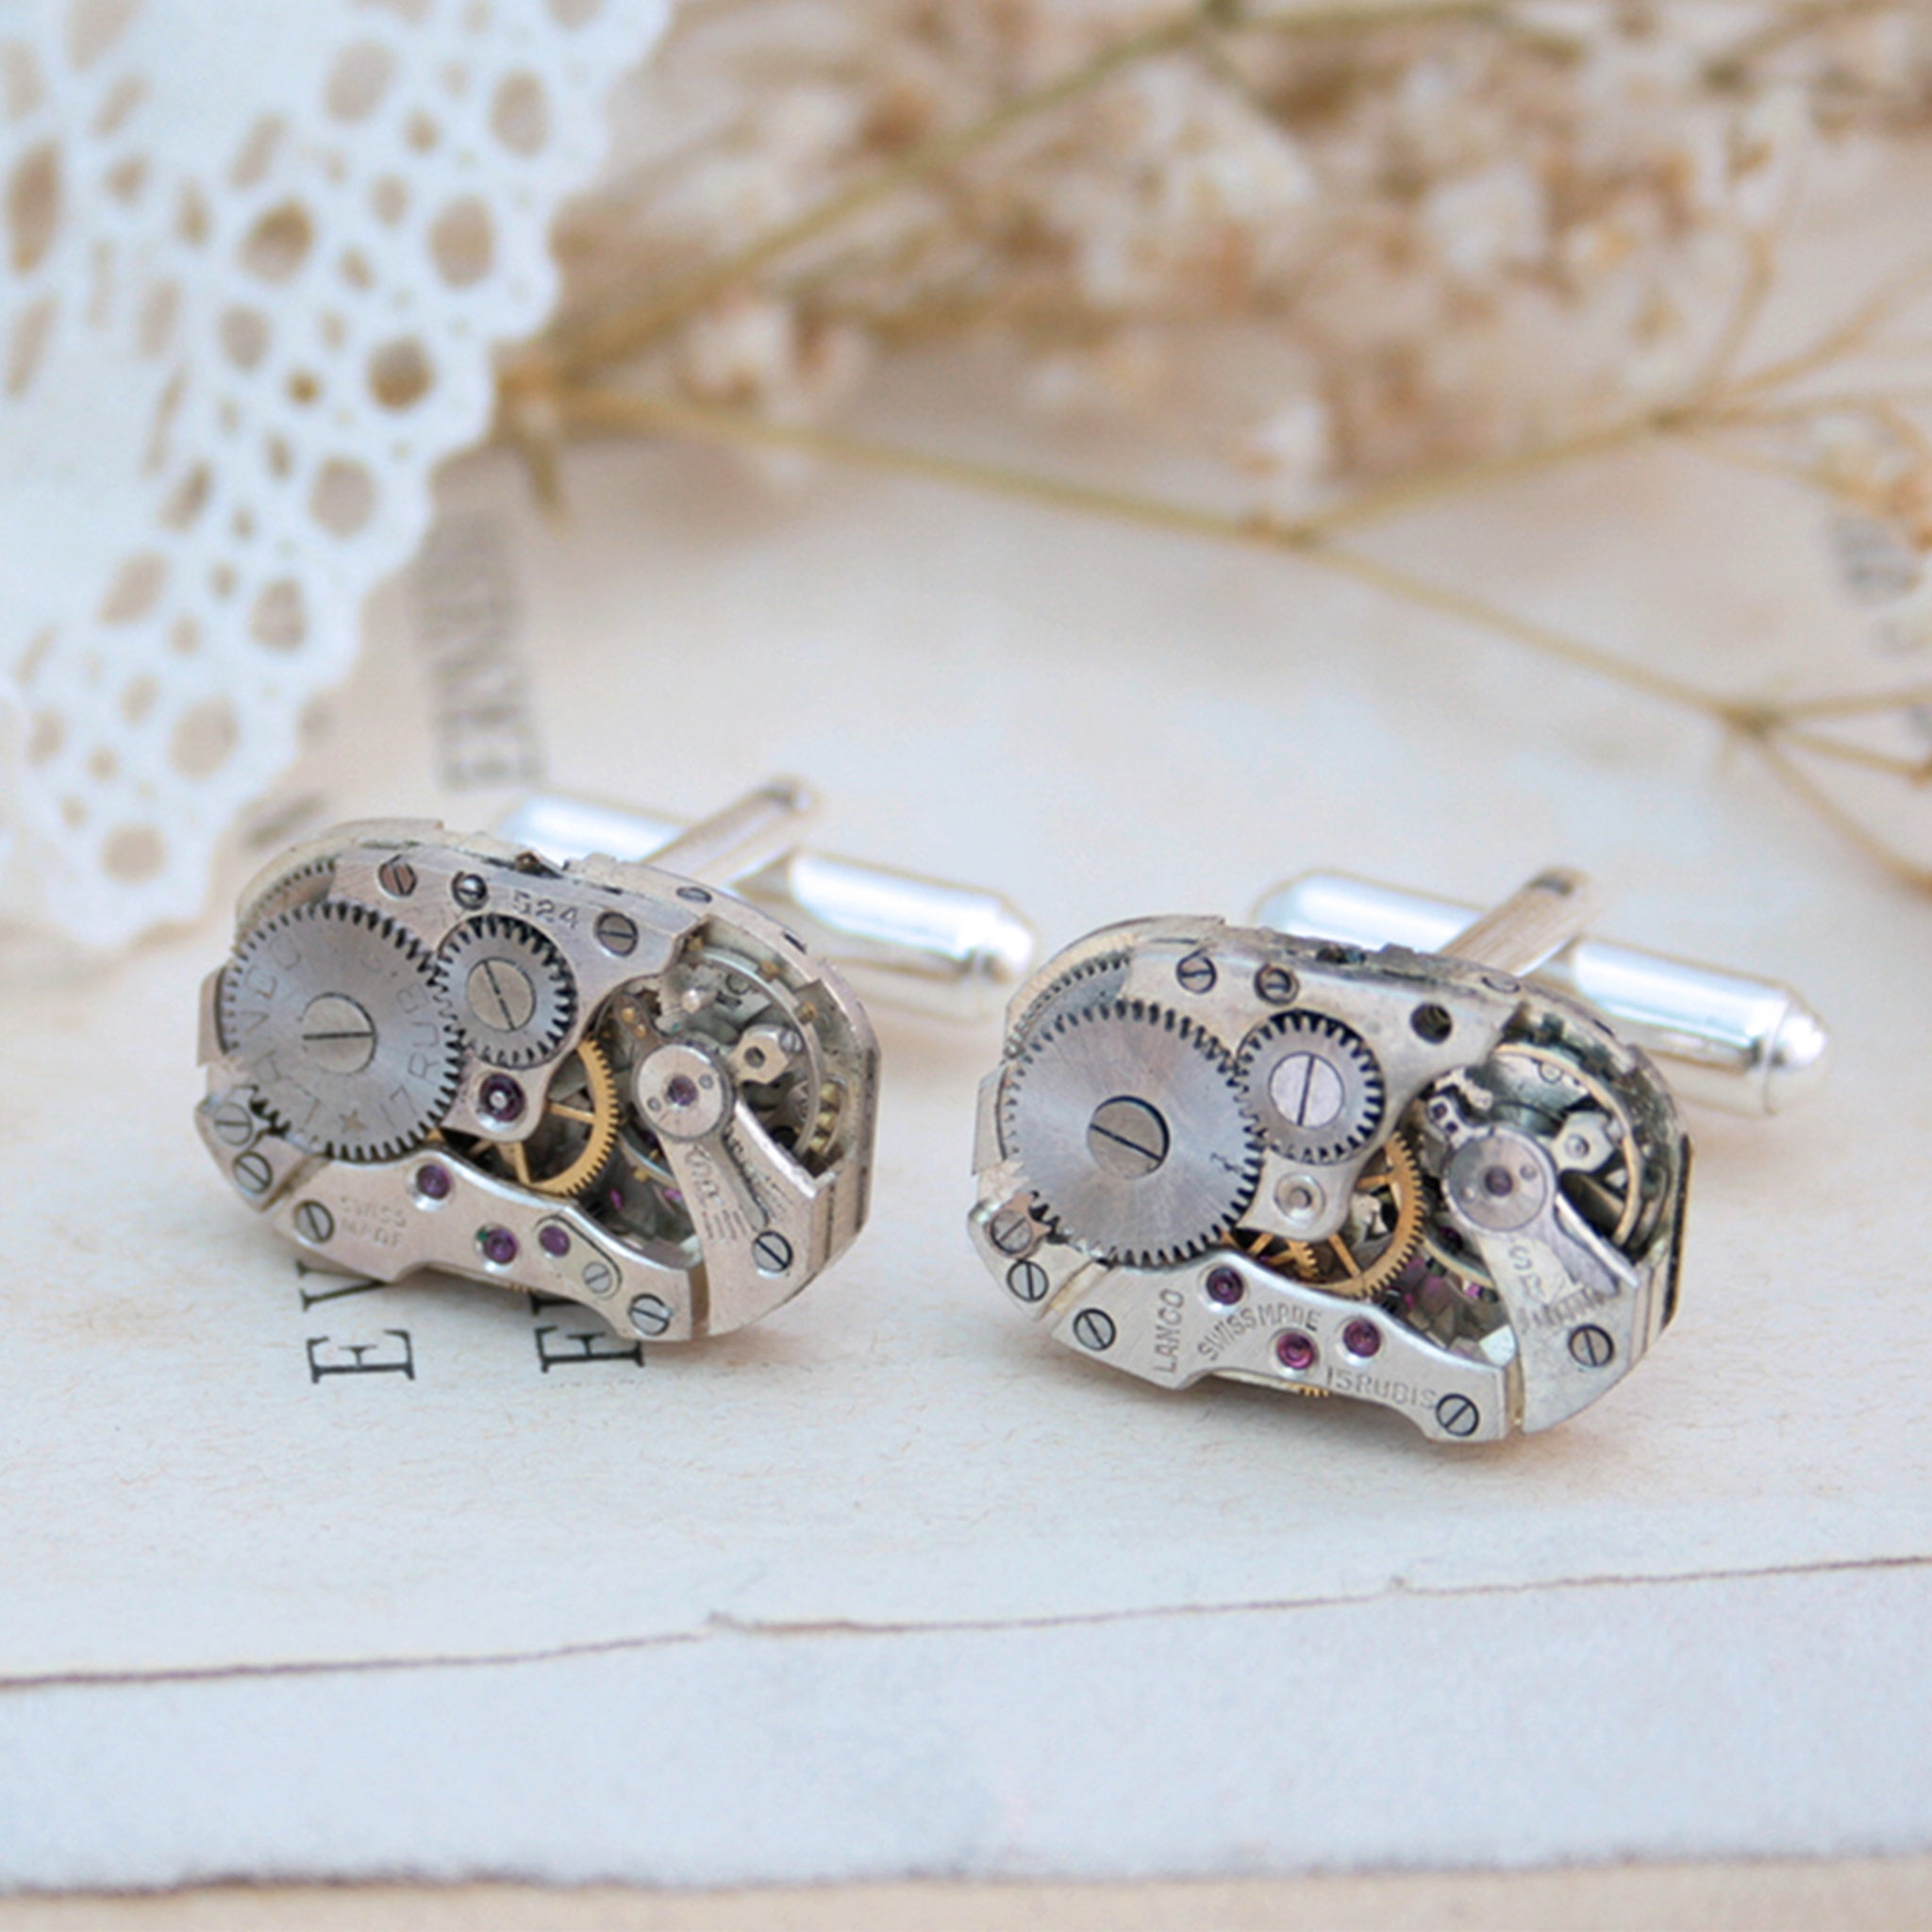 Cufflinks in Steampunk Style made of watch movements